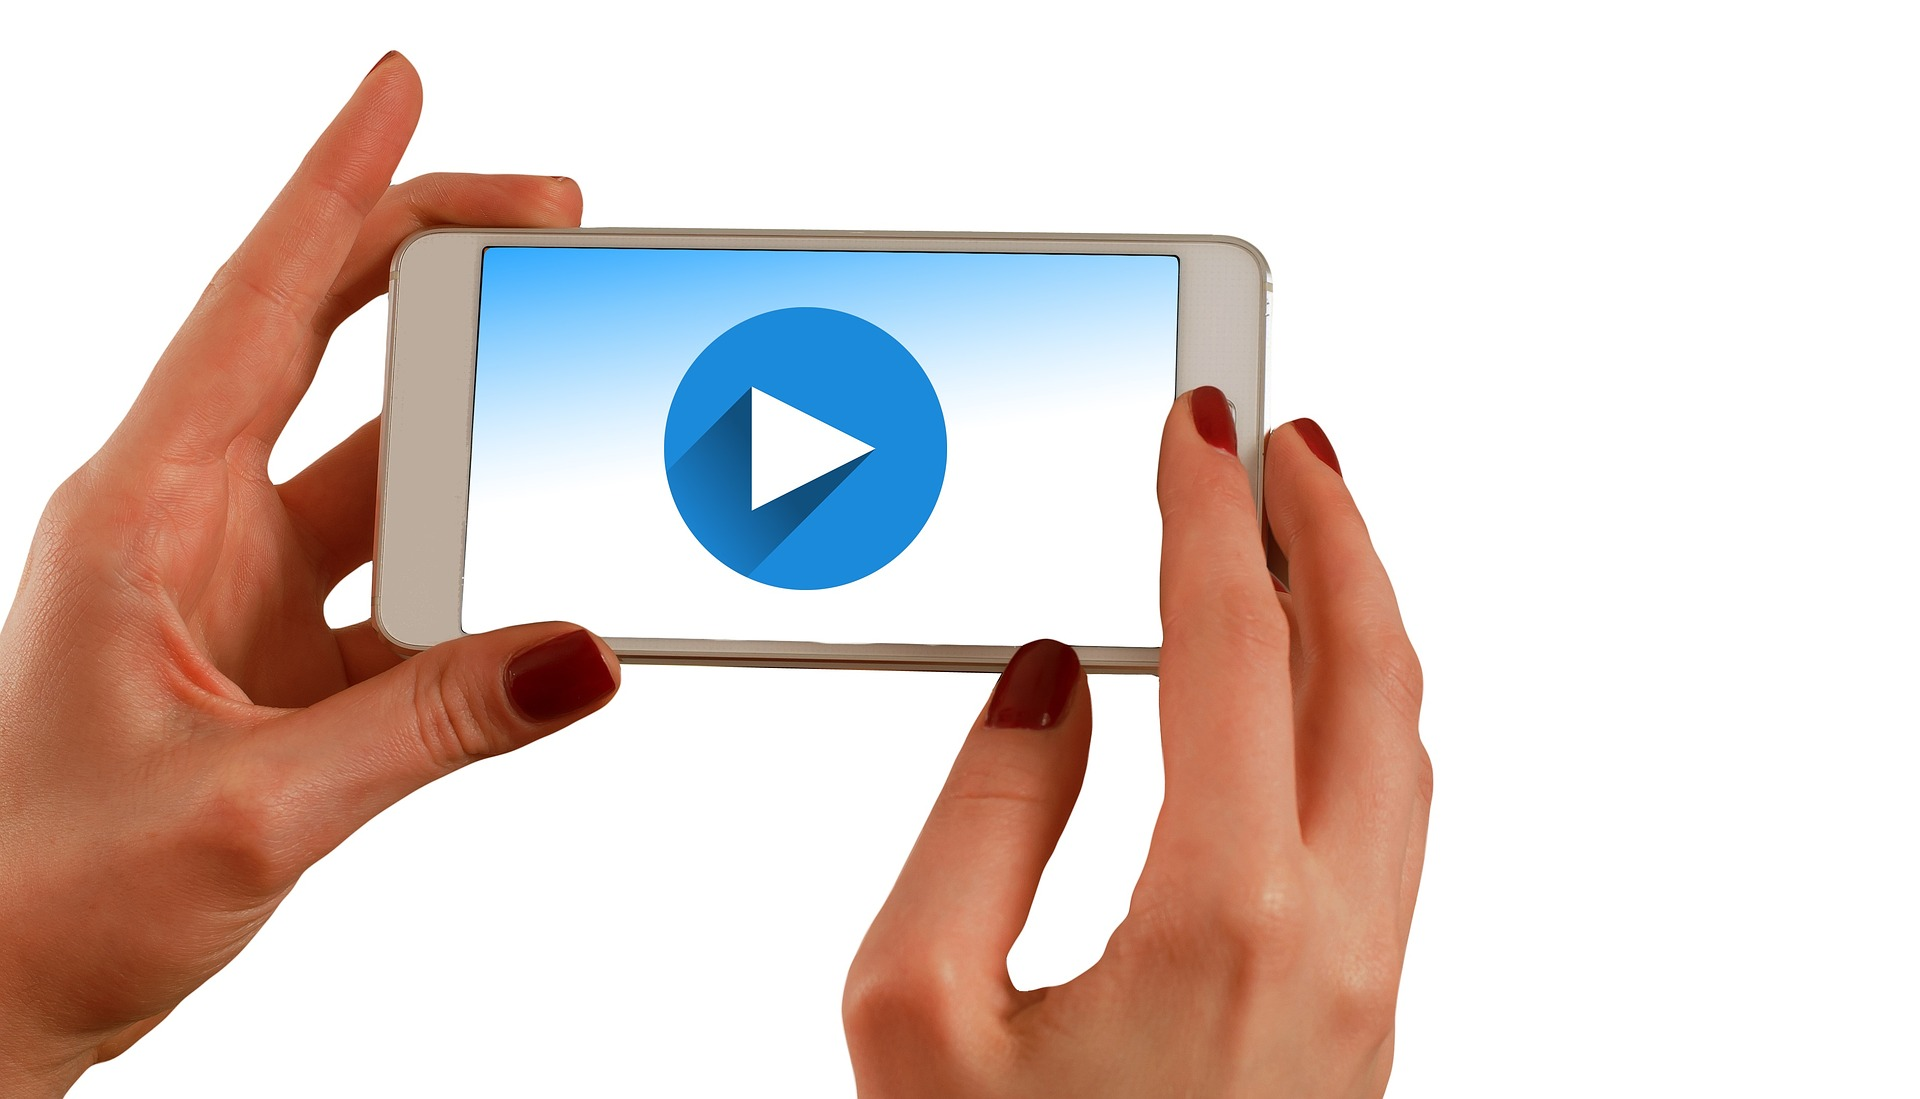 Mobile video consumption has doubled since 2014